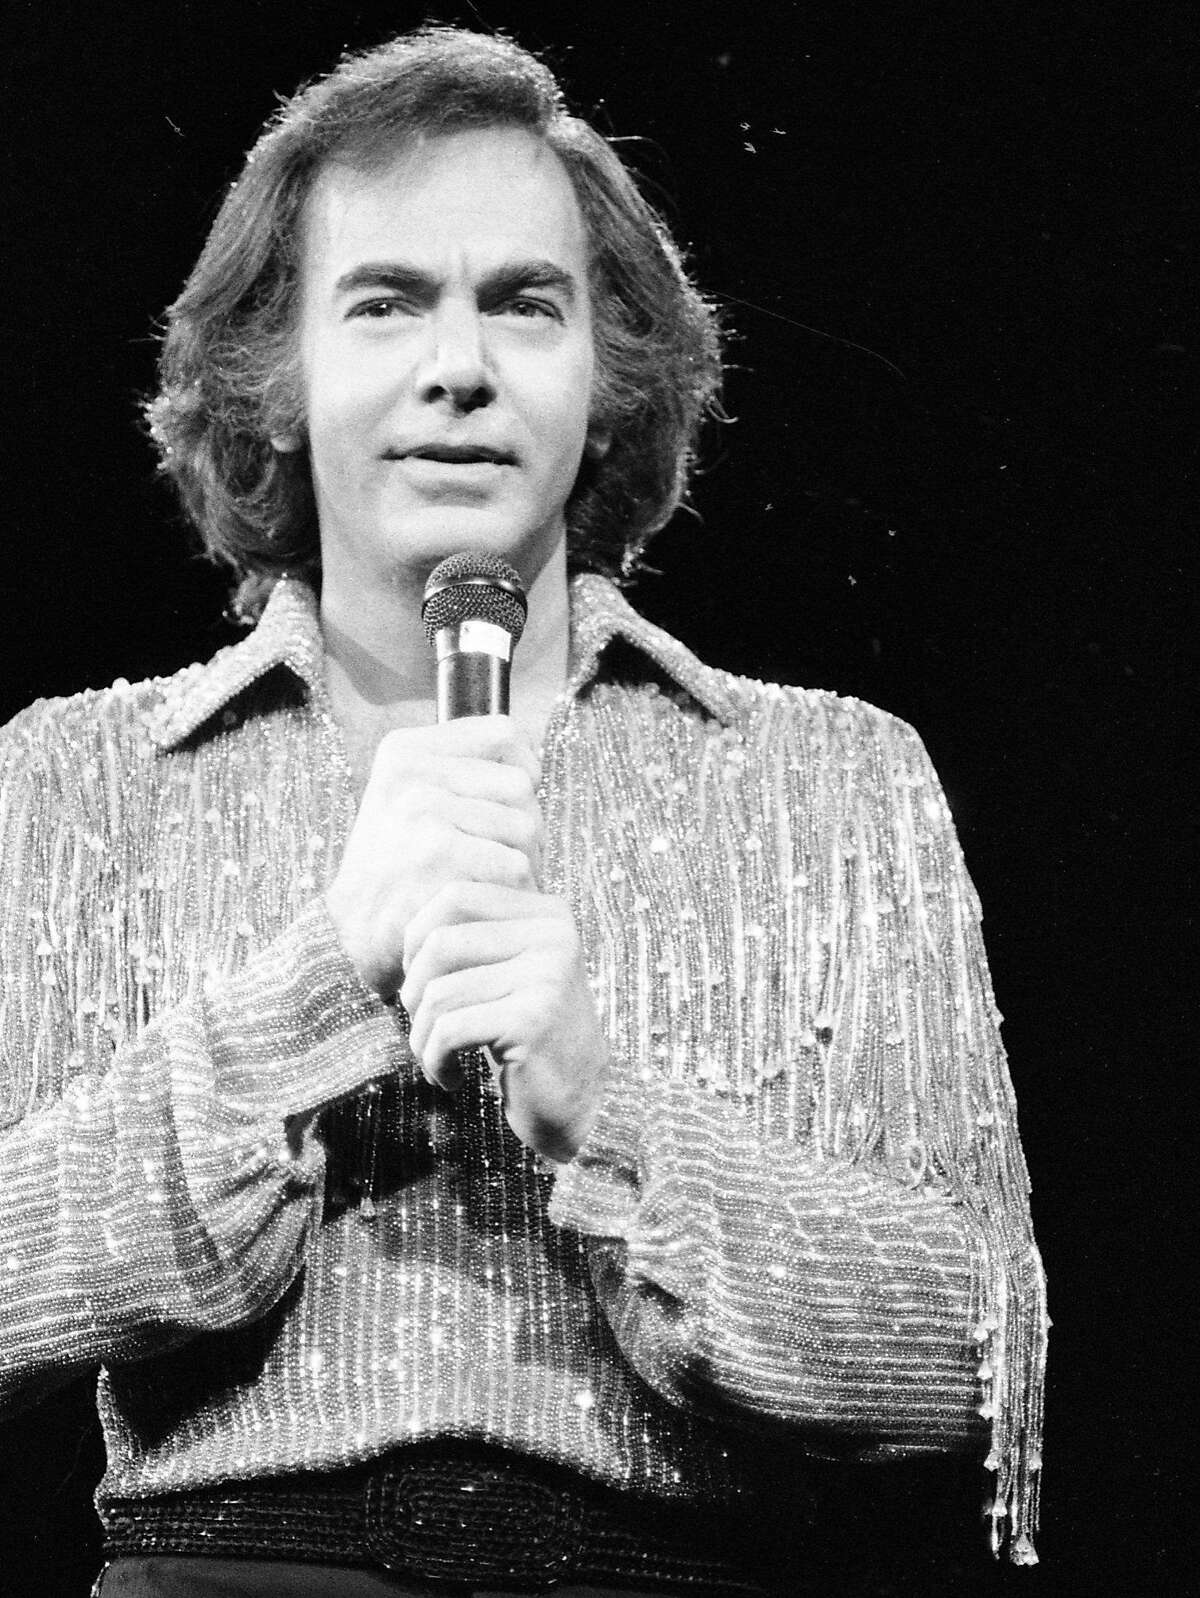 Neil Diamond performs at the Circle Star October 20, 1983